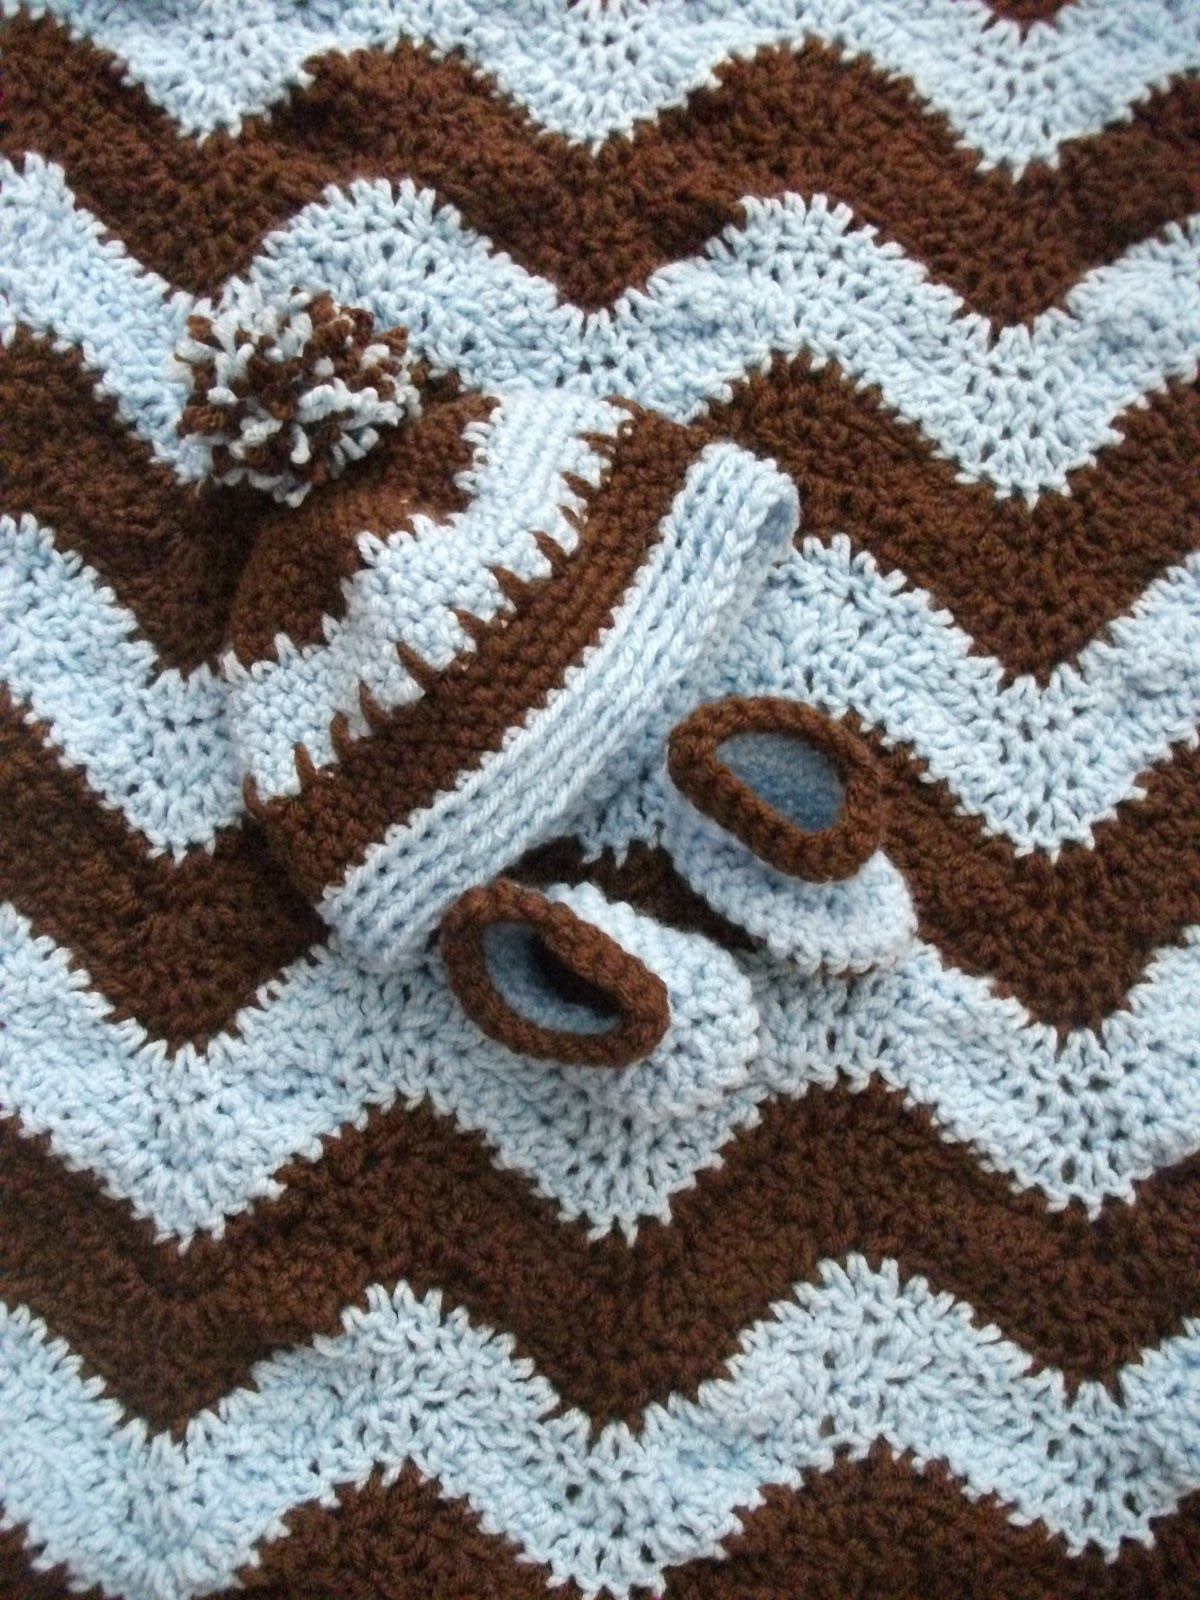 Crochet Blanket Patterns Free Baby : BABY BLANKET CROCHETED FREE PATTERN FREE PATTERNS